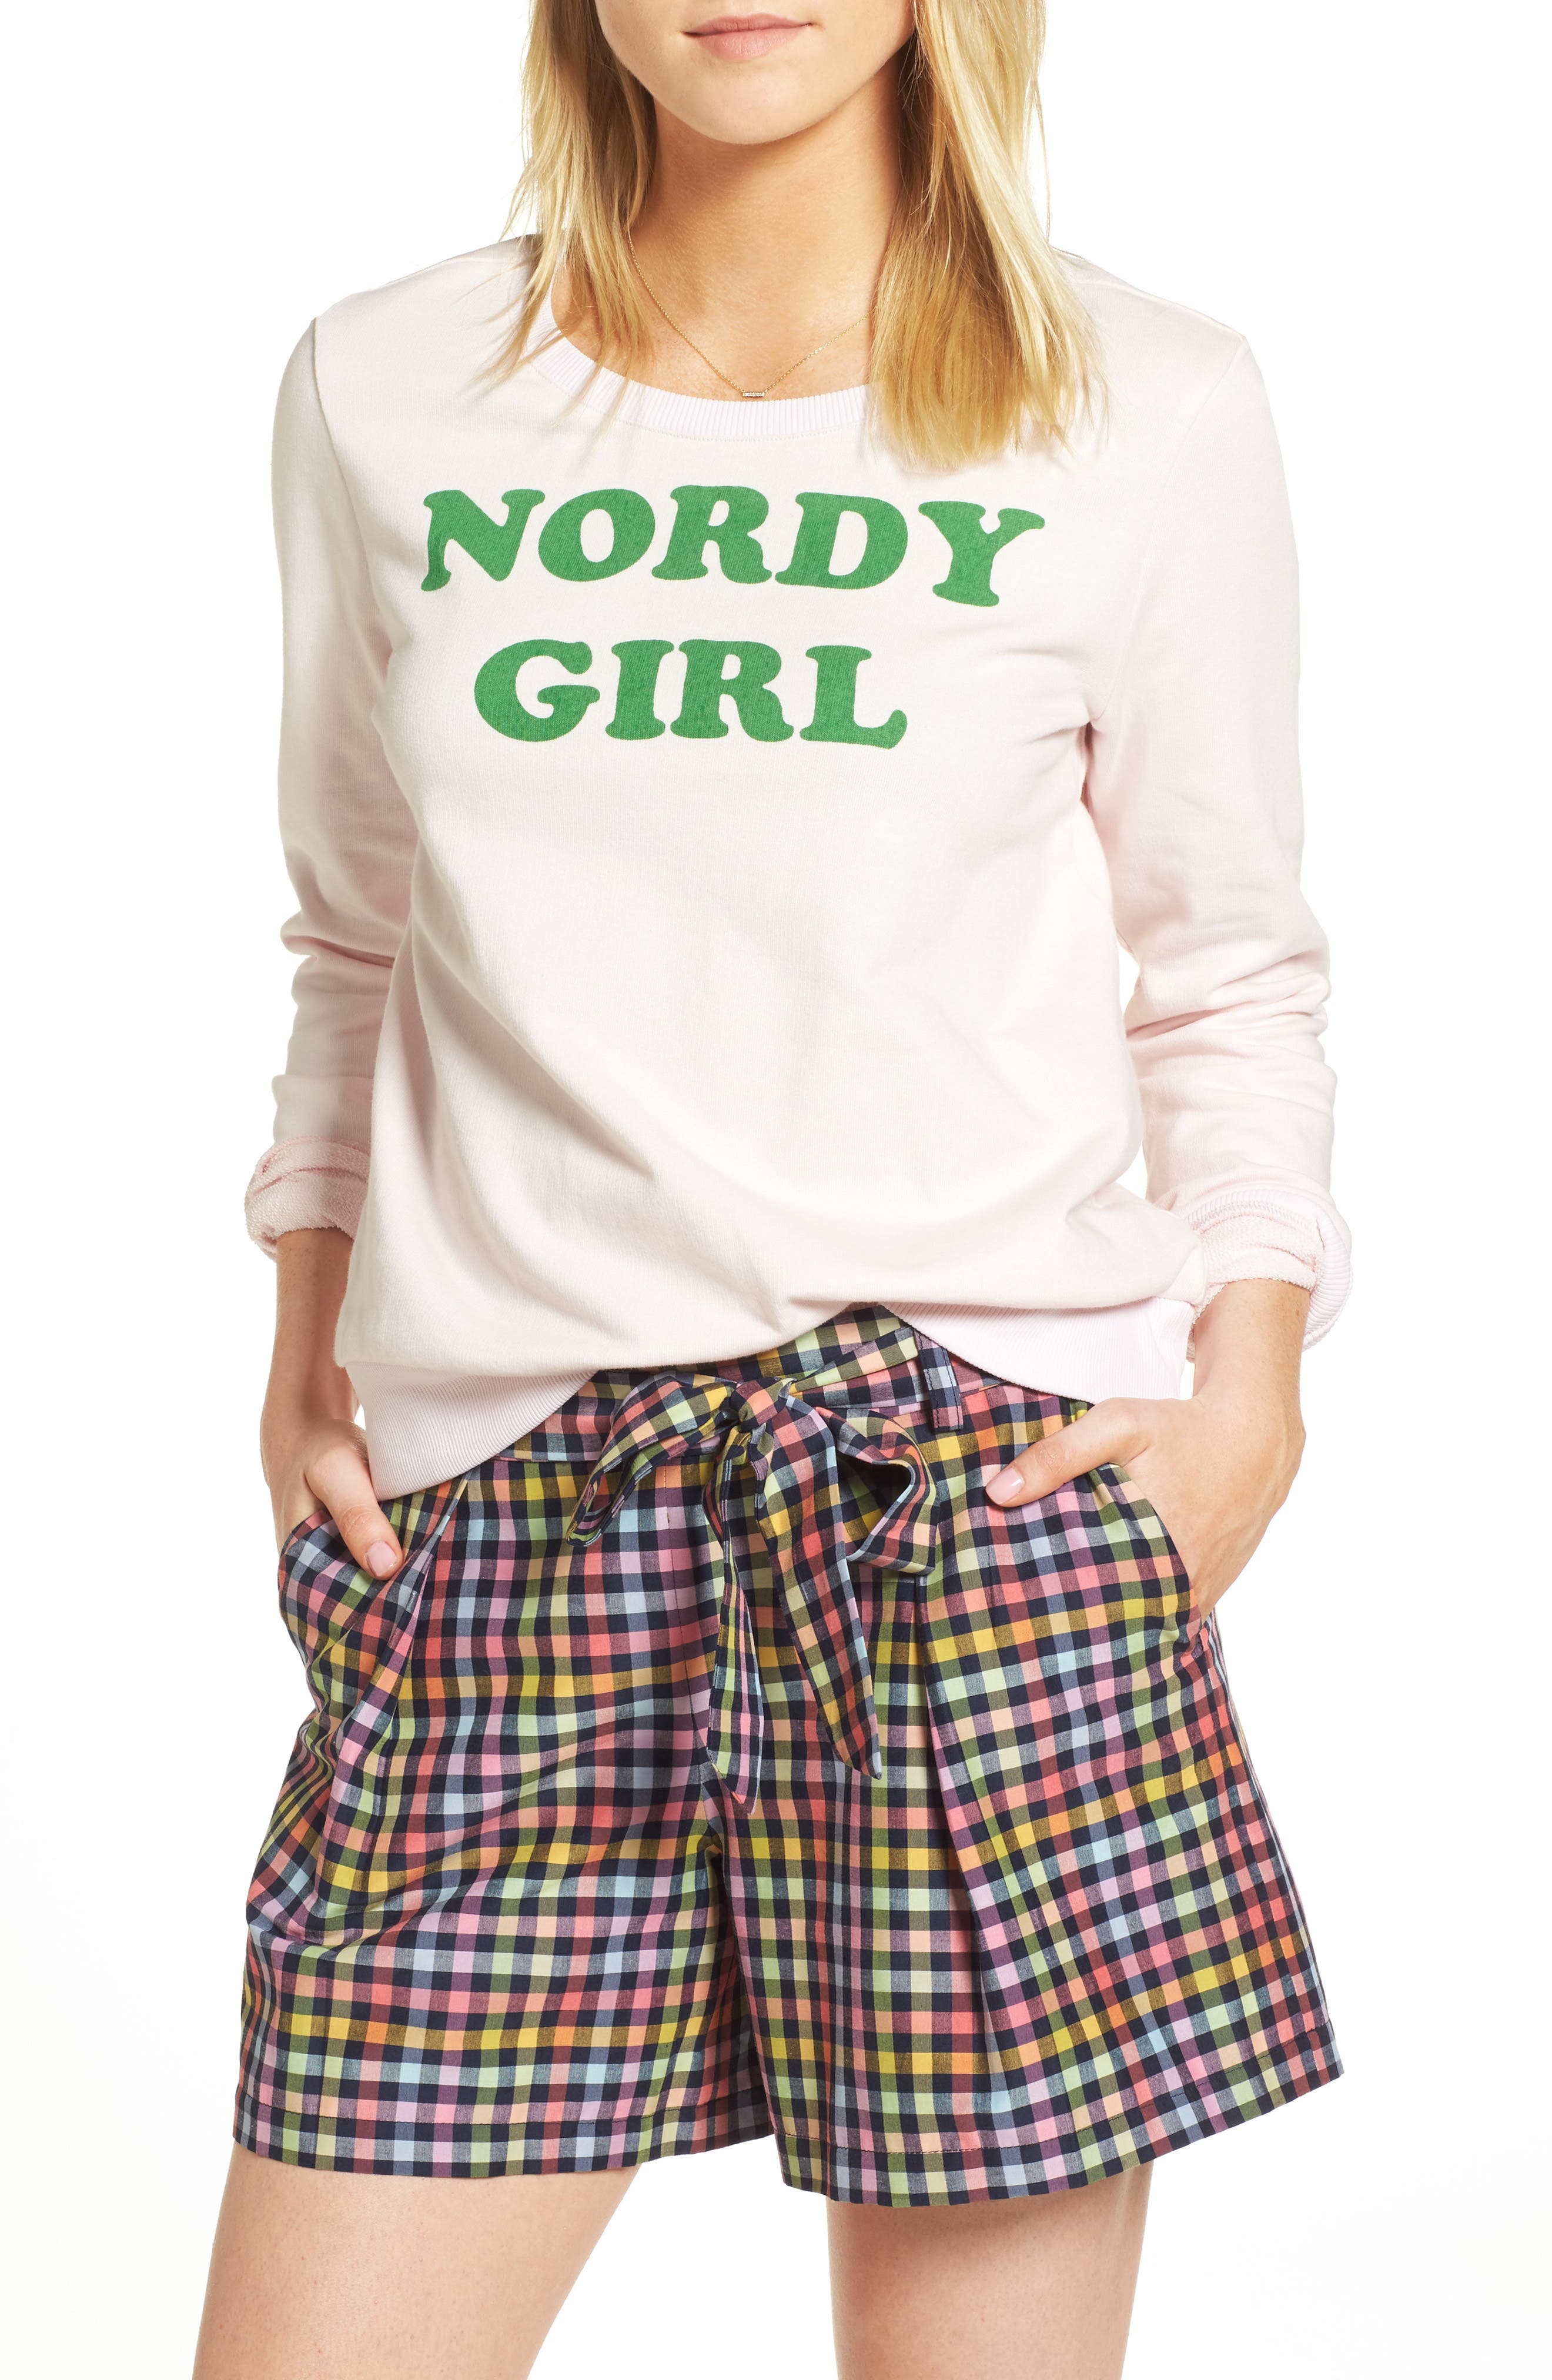 1901 Nordy Girl Sweatshirt